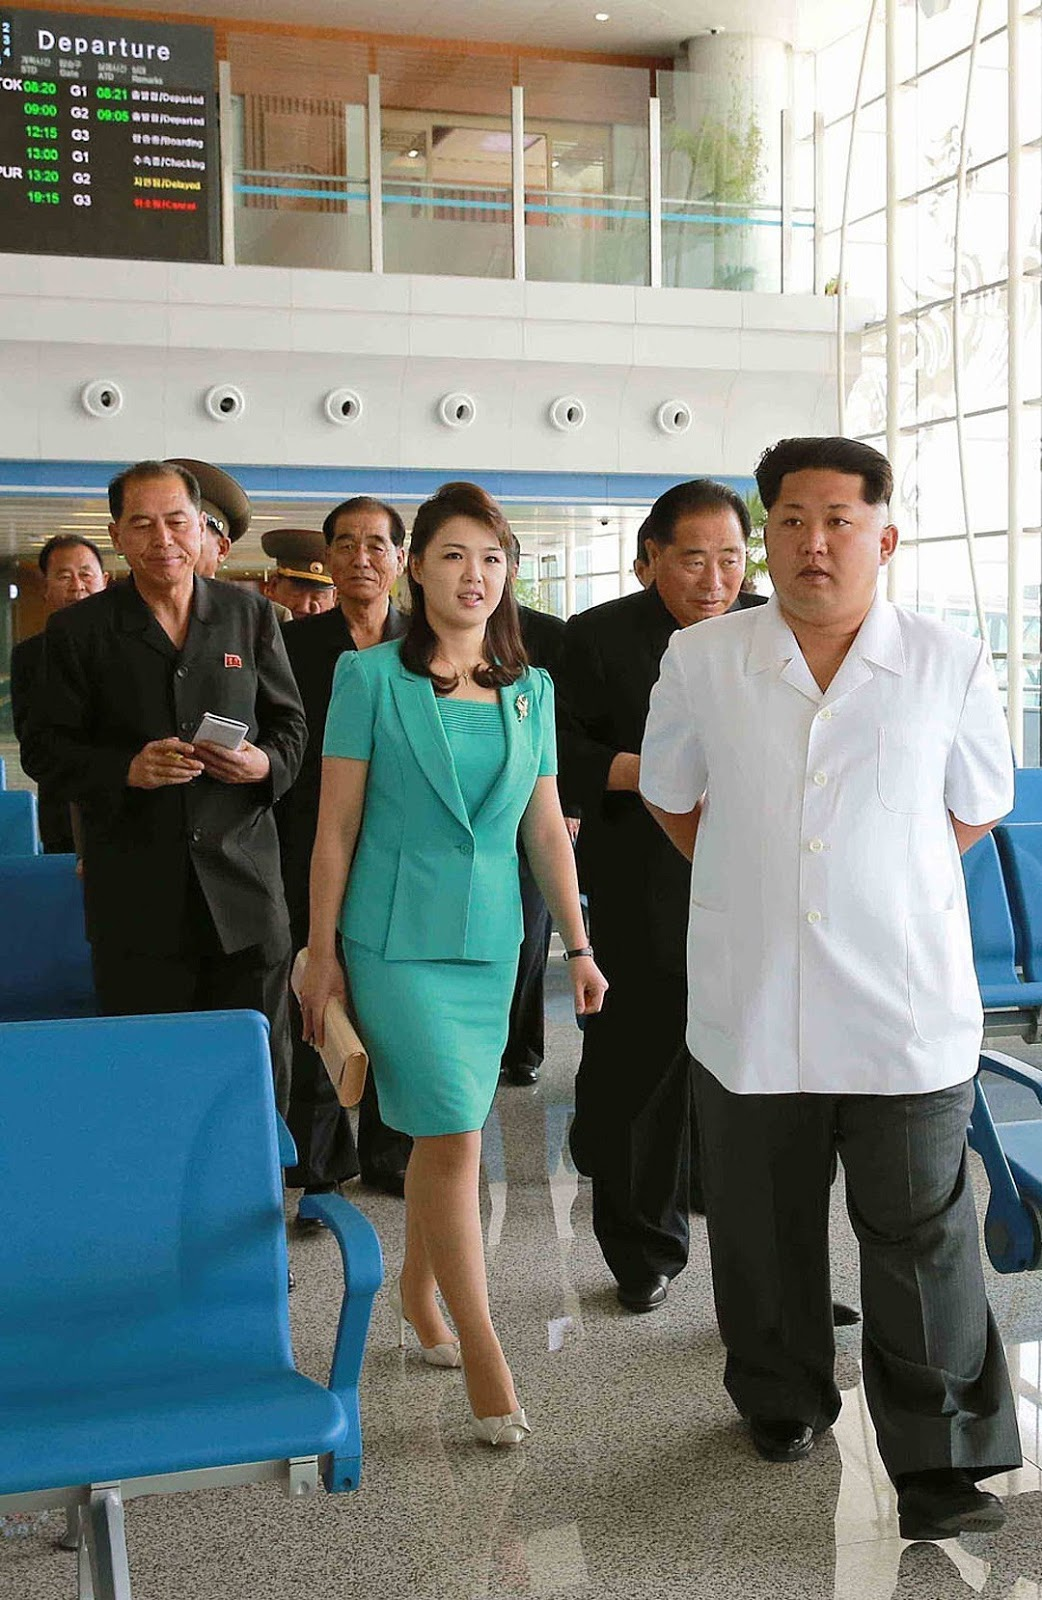 Ri, a former star singer, emerged in 2012 and has been regarded as one of the most high-profile women in the isolated, deeply patriarchal nation, but with a limited role as Kim's stylish, coy wife.